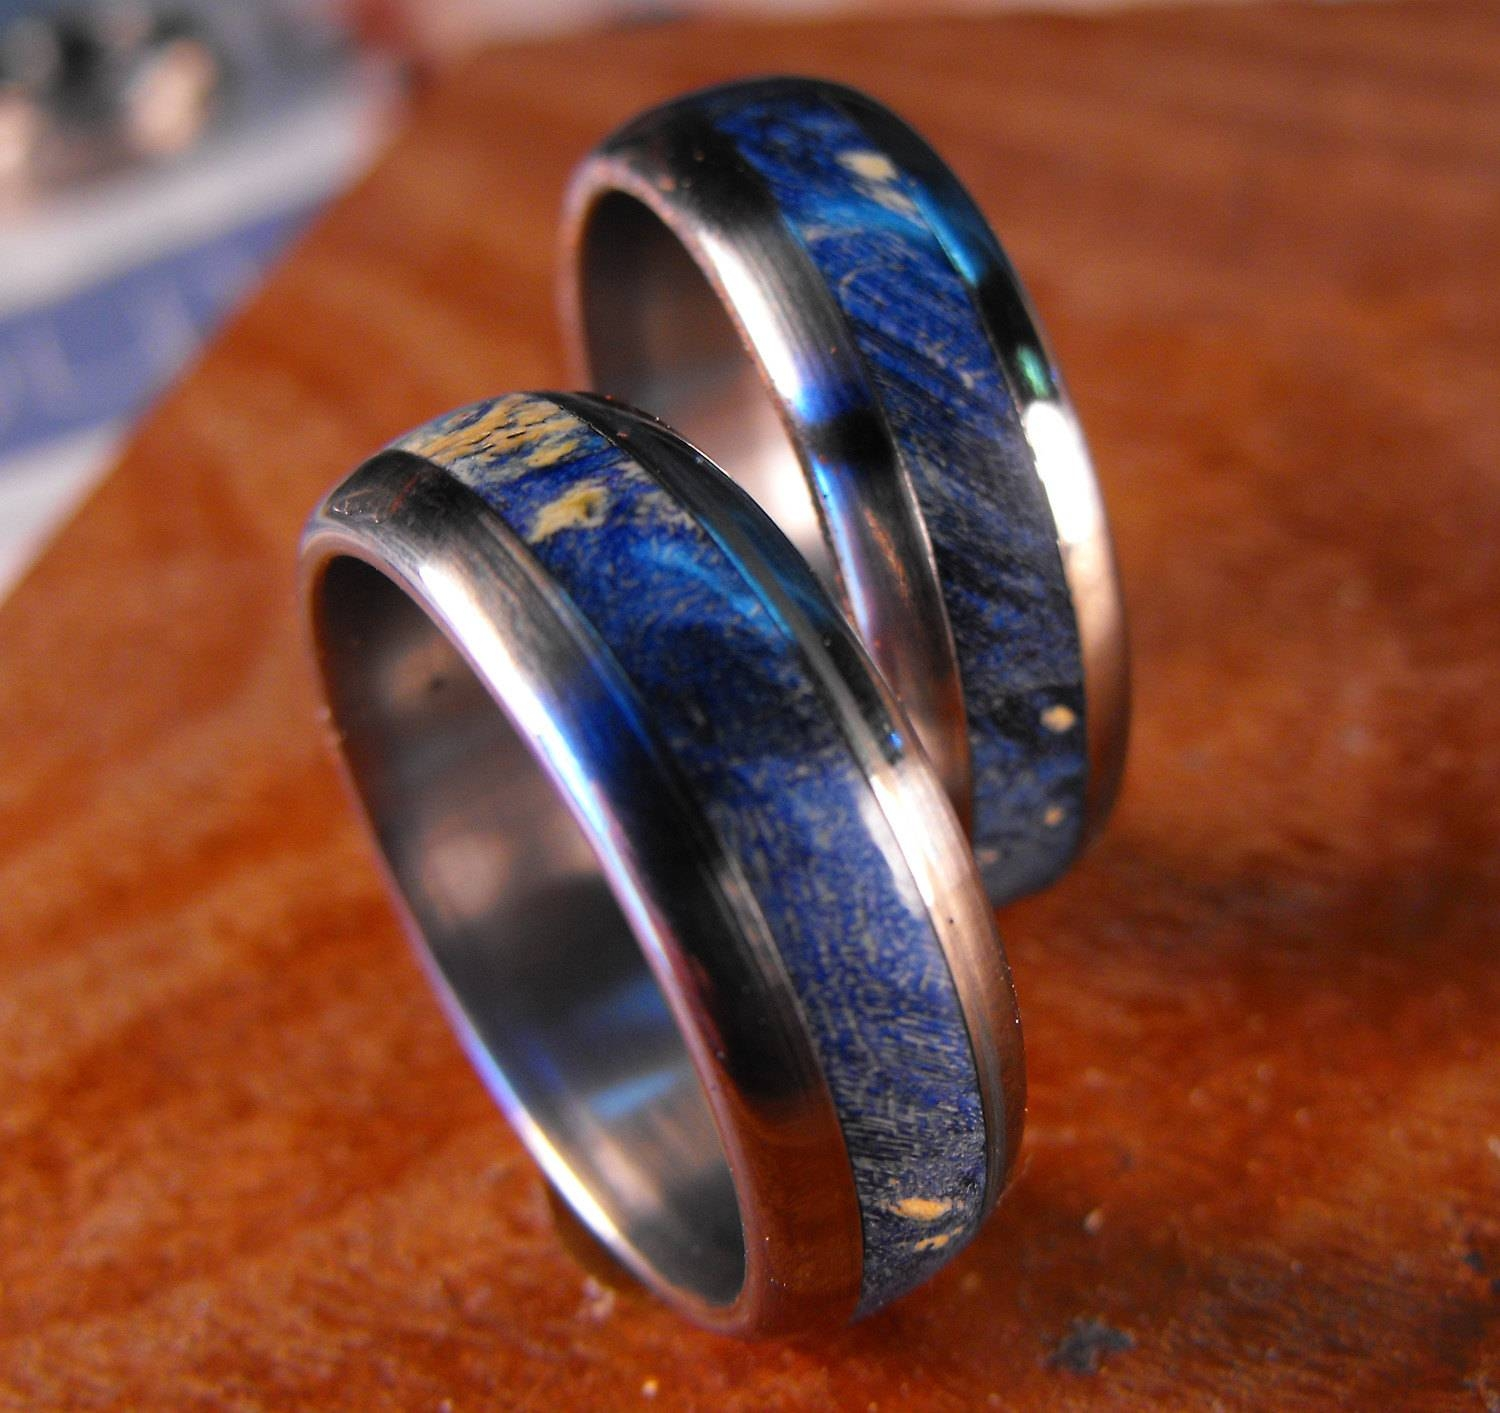 Titanium Rings Wedding Rings Wedding Ring Set His And Hers Pertaining To Wood Inlay Wedding Rings (View 4 of 15)